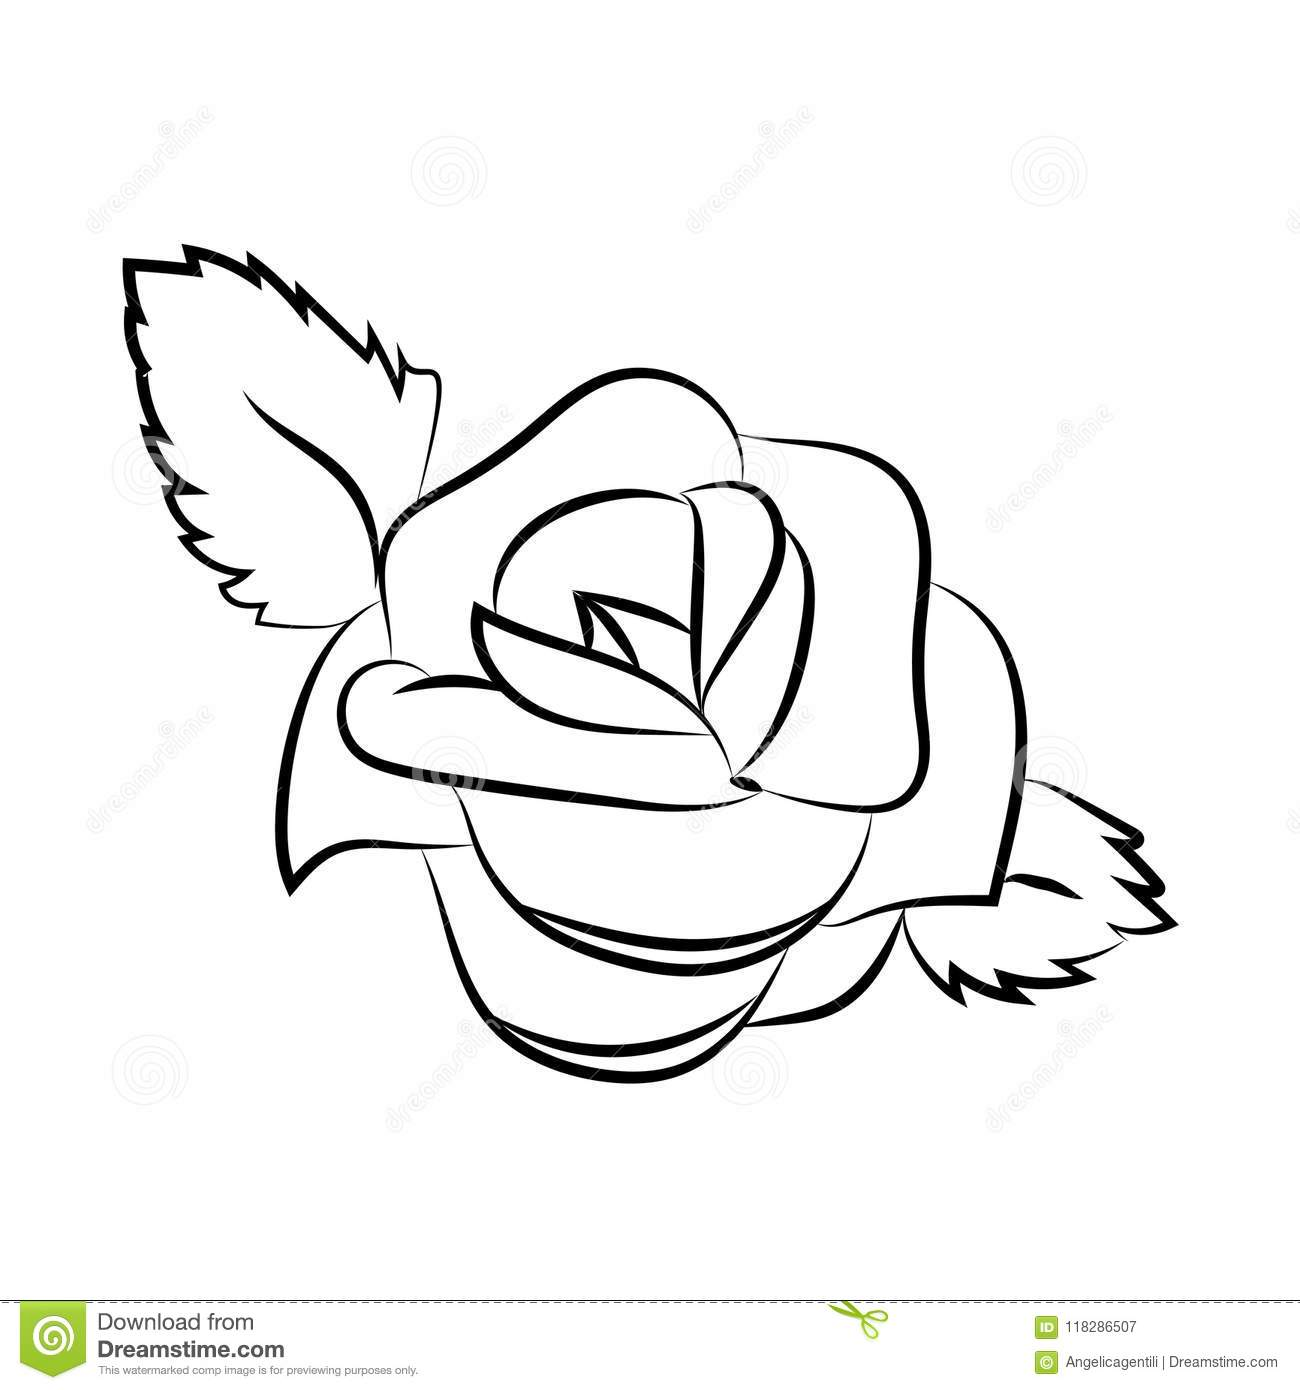 Simple Vector Rose Design Of A Flower Silhouette Isolated On